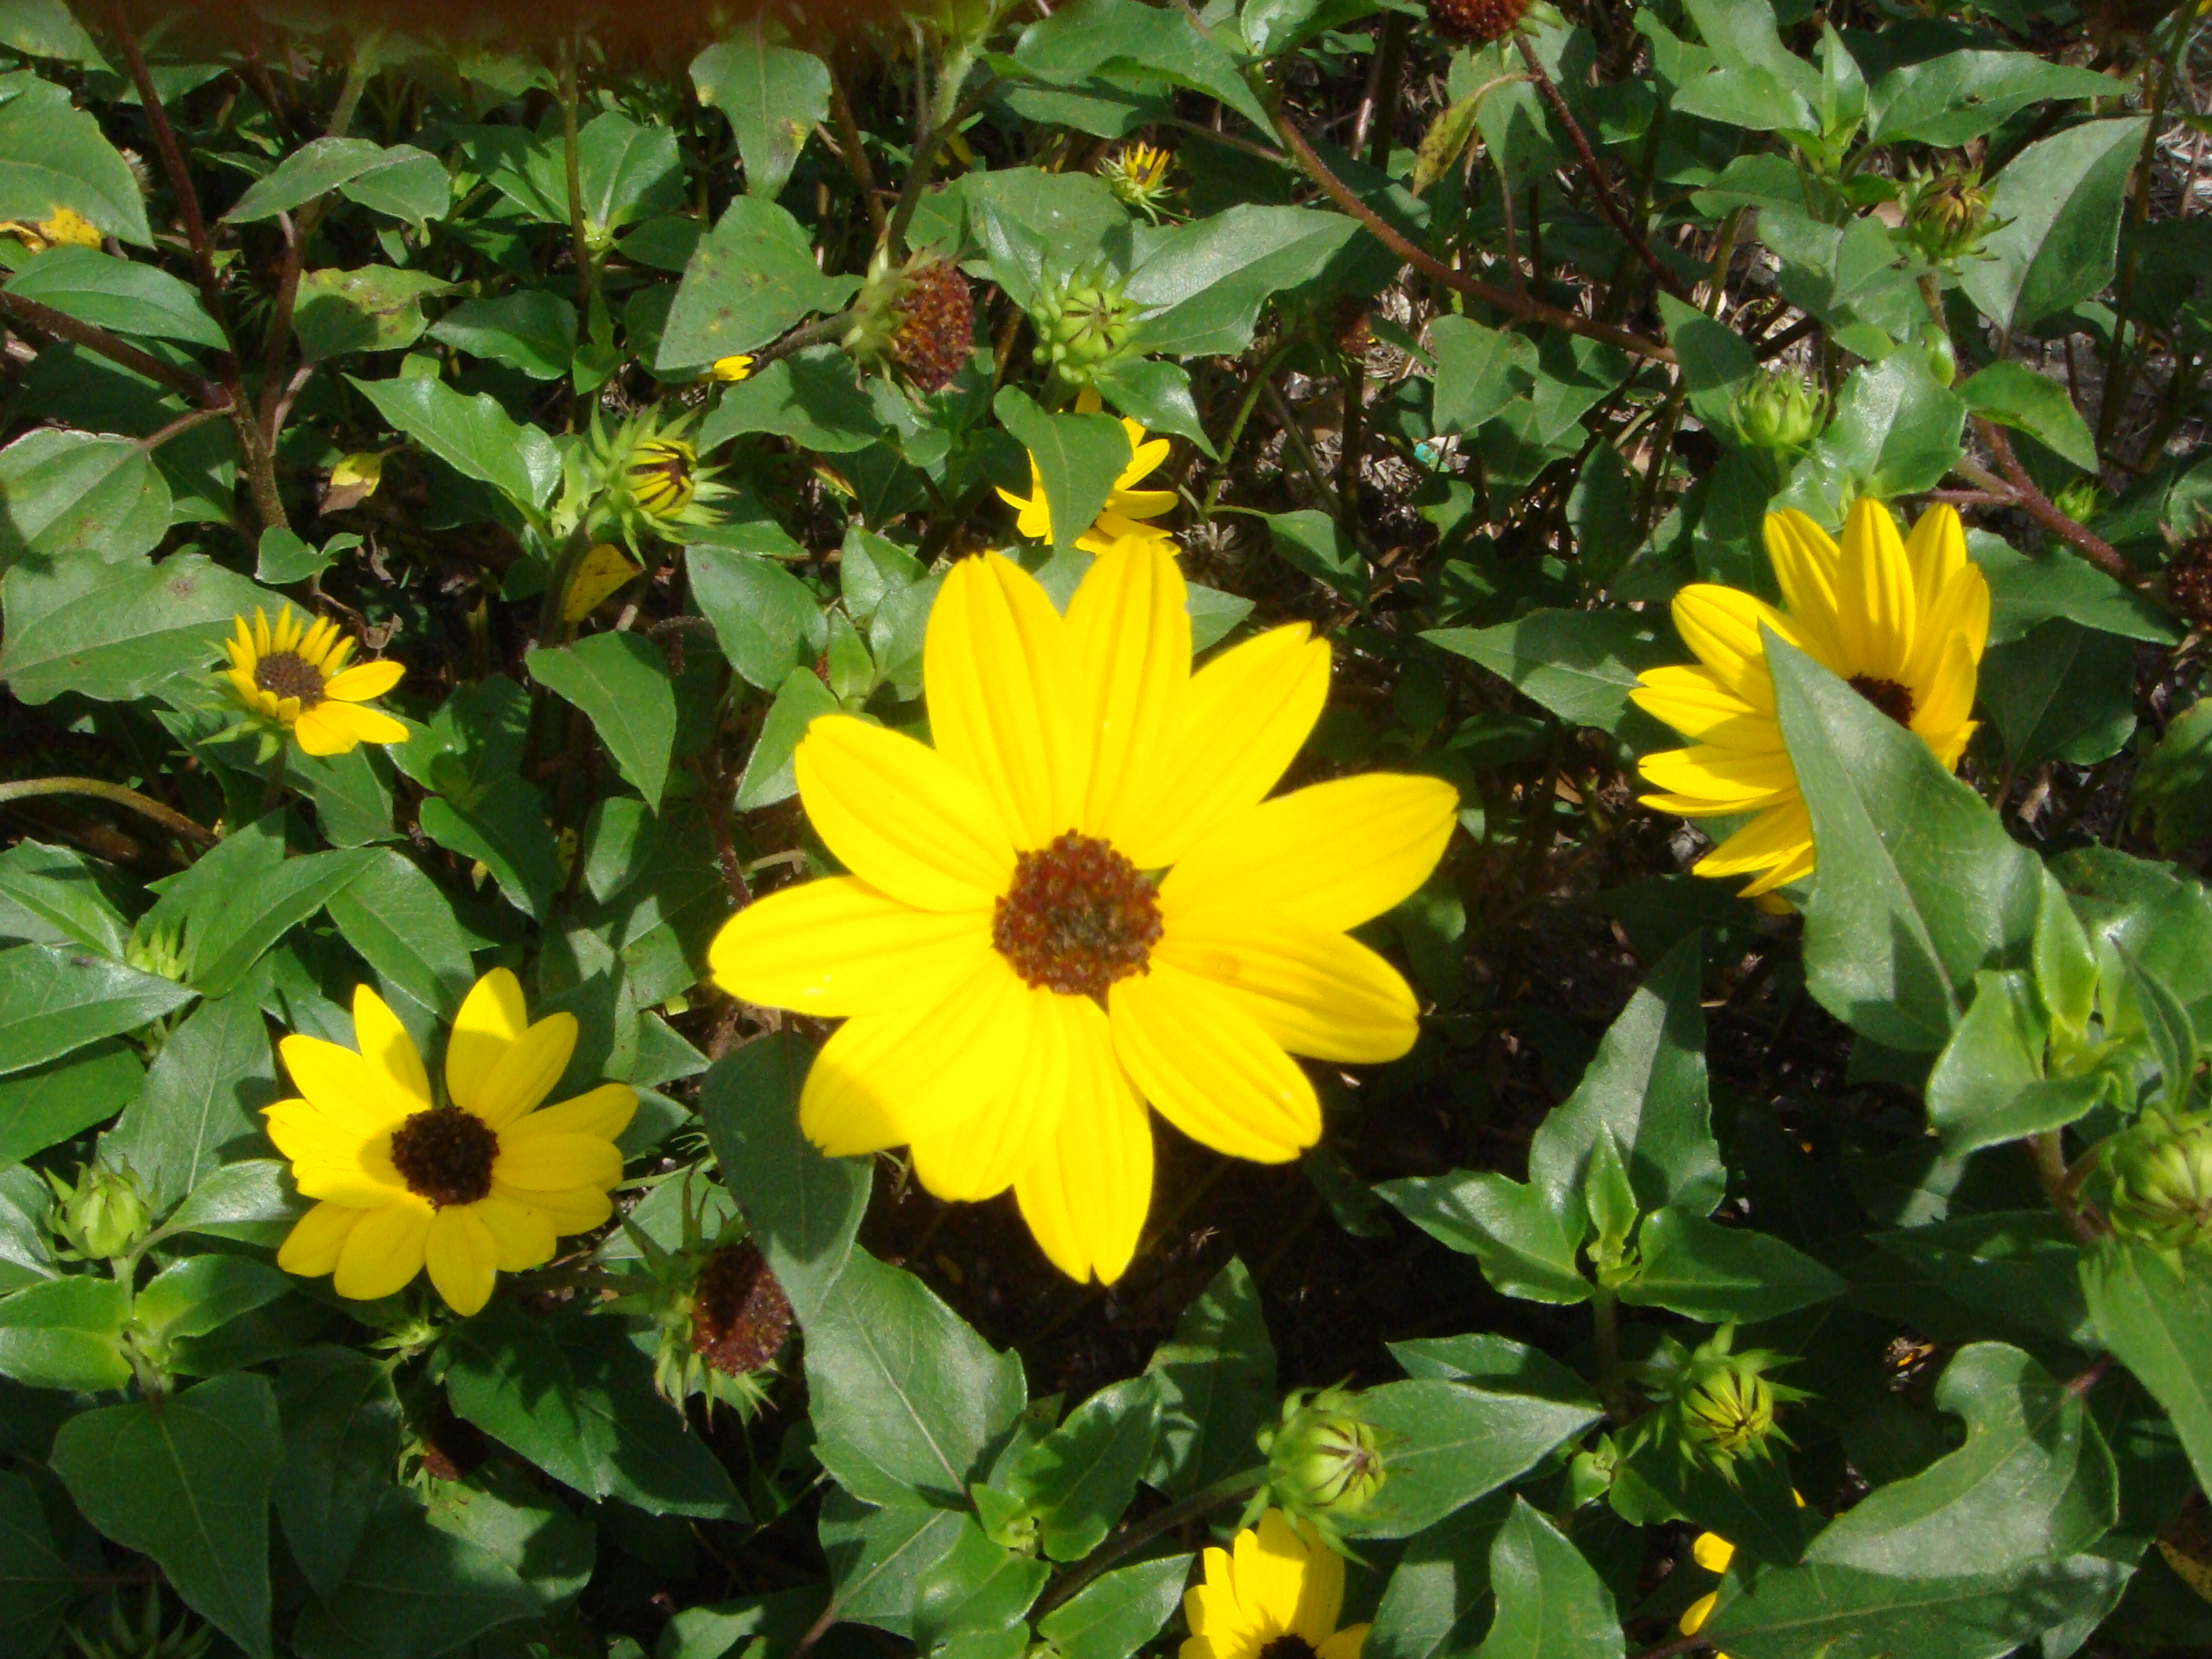 Dune Sunflower-Helianthus debilis